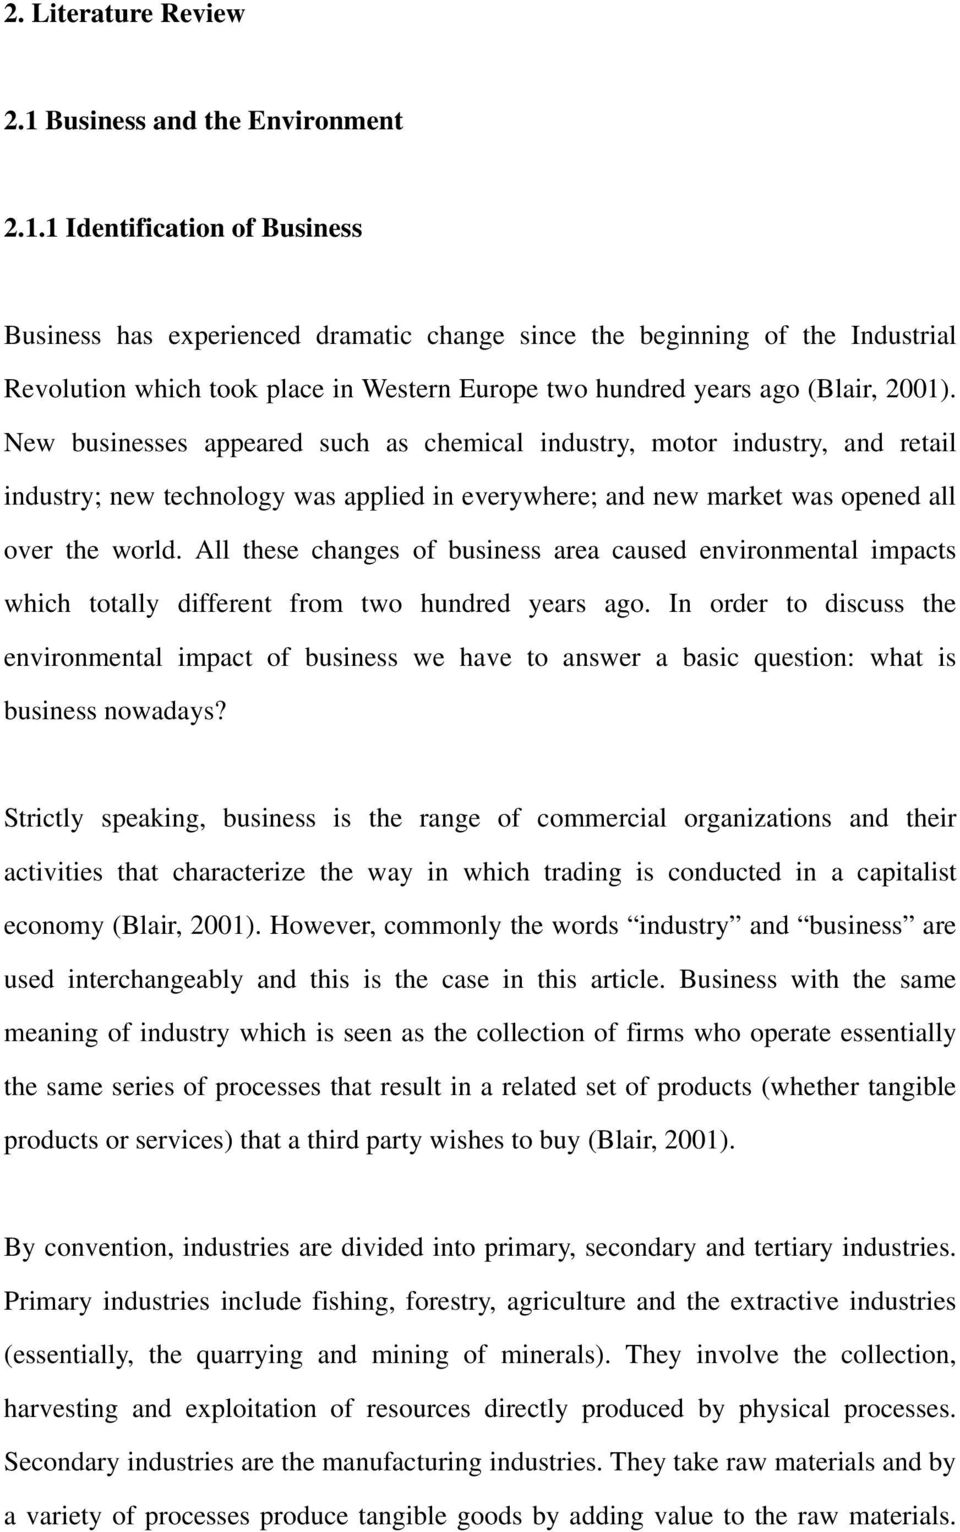 1 Identification of Business Business has experienced dramatic change since the beginning of the Industrial Revolution which took place in Western Europe two hundred years ago (Blair, 2001).